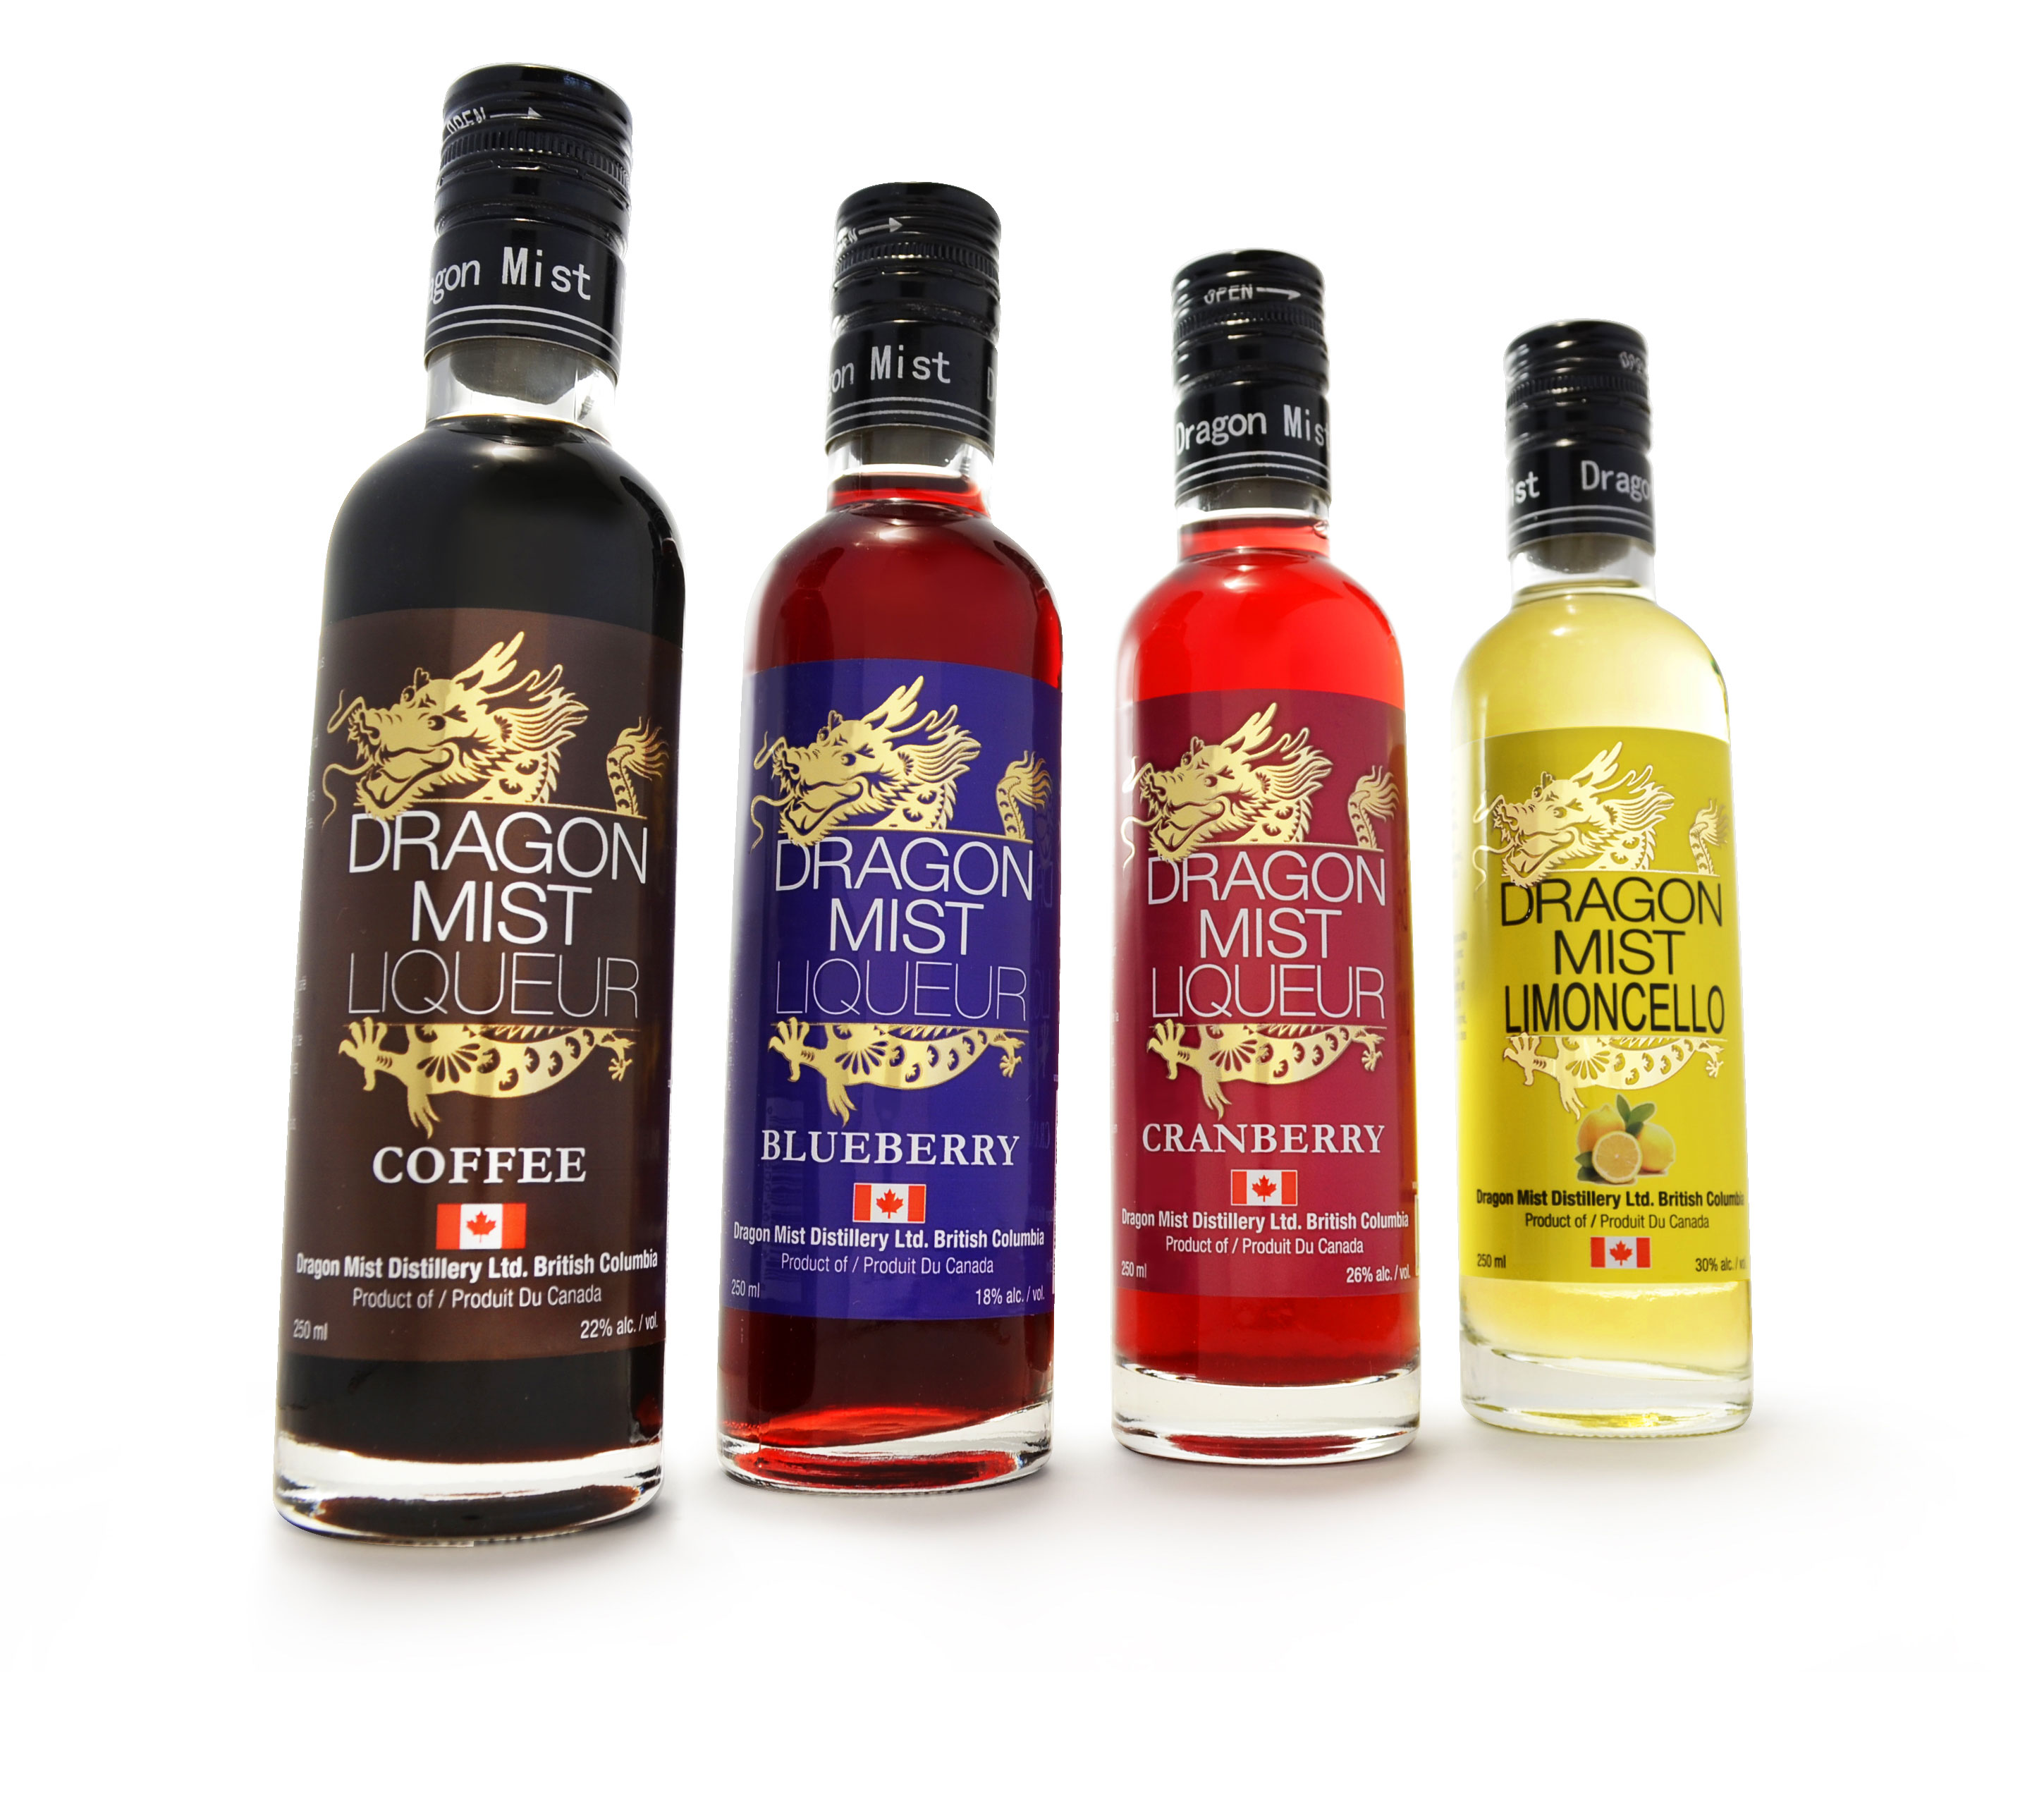 Dragon Mist liqueur sample set of 250 ml bottles of limoncello, coffee liqueur, blueberry liqueur, and cranberry liqueur